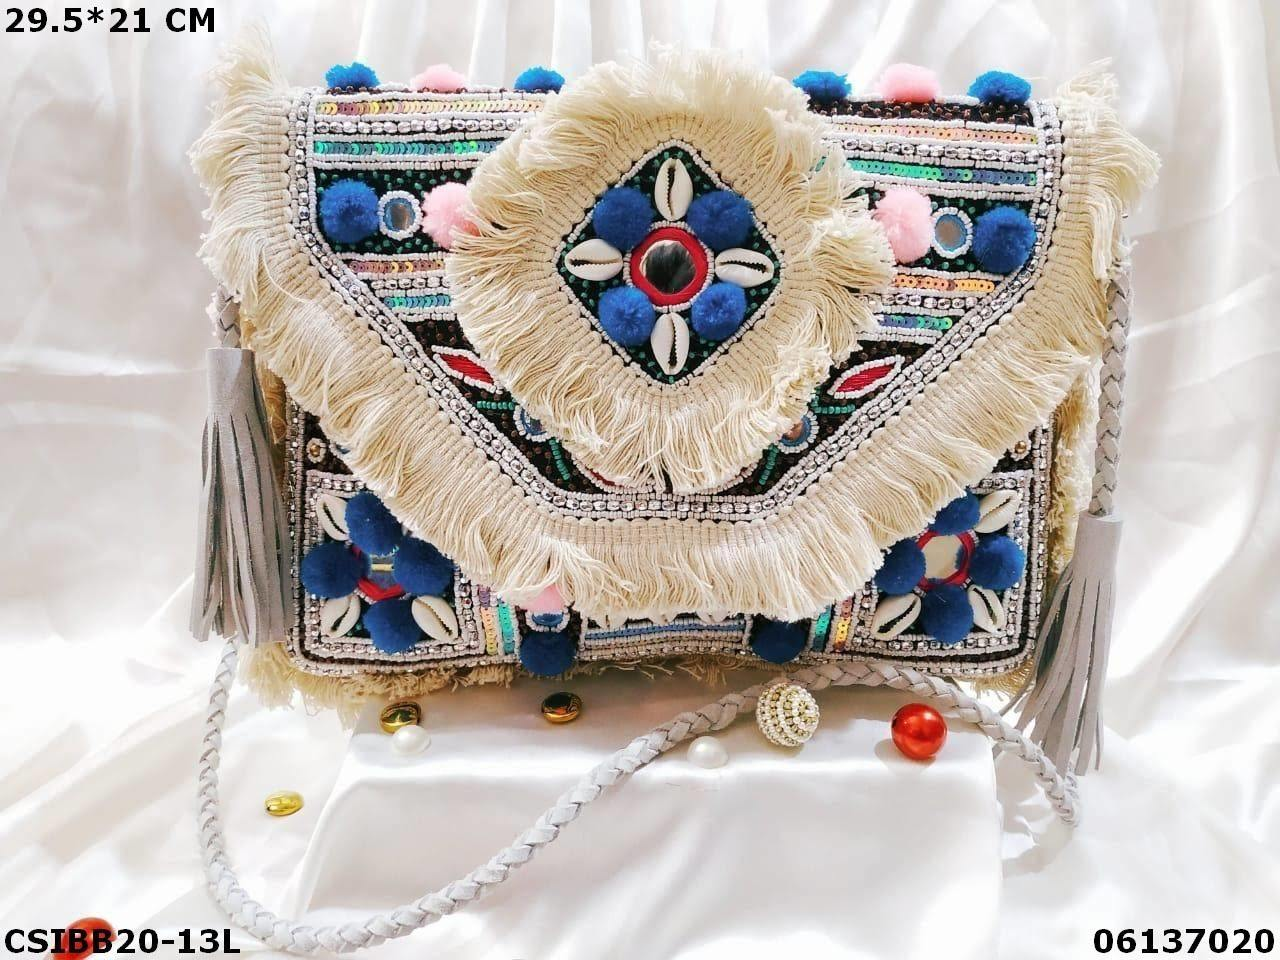 Designer Canvas Banjara Bag With Leather Belt